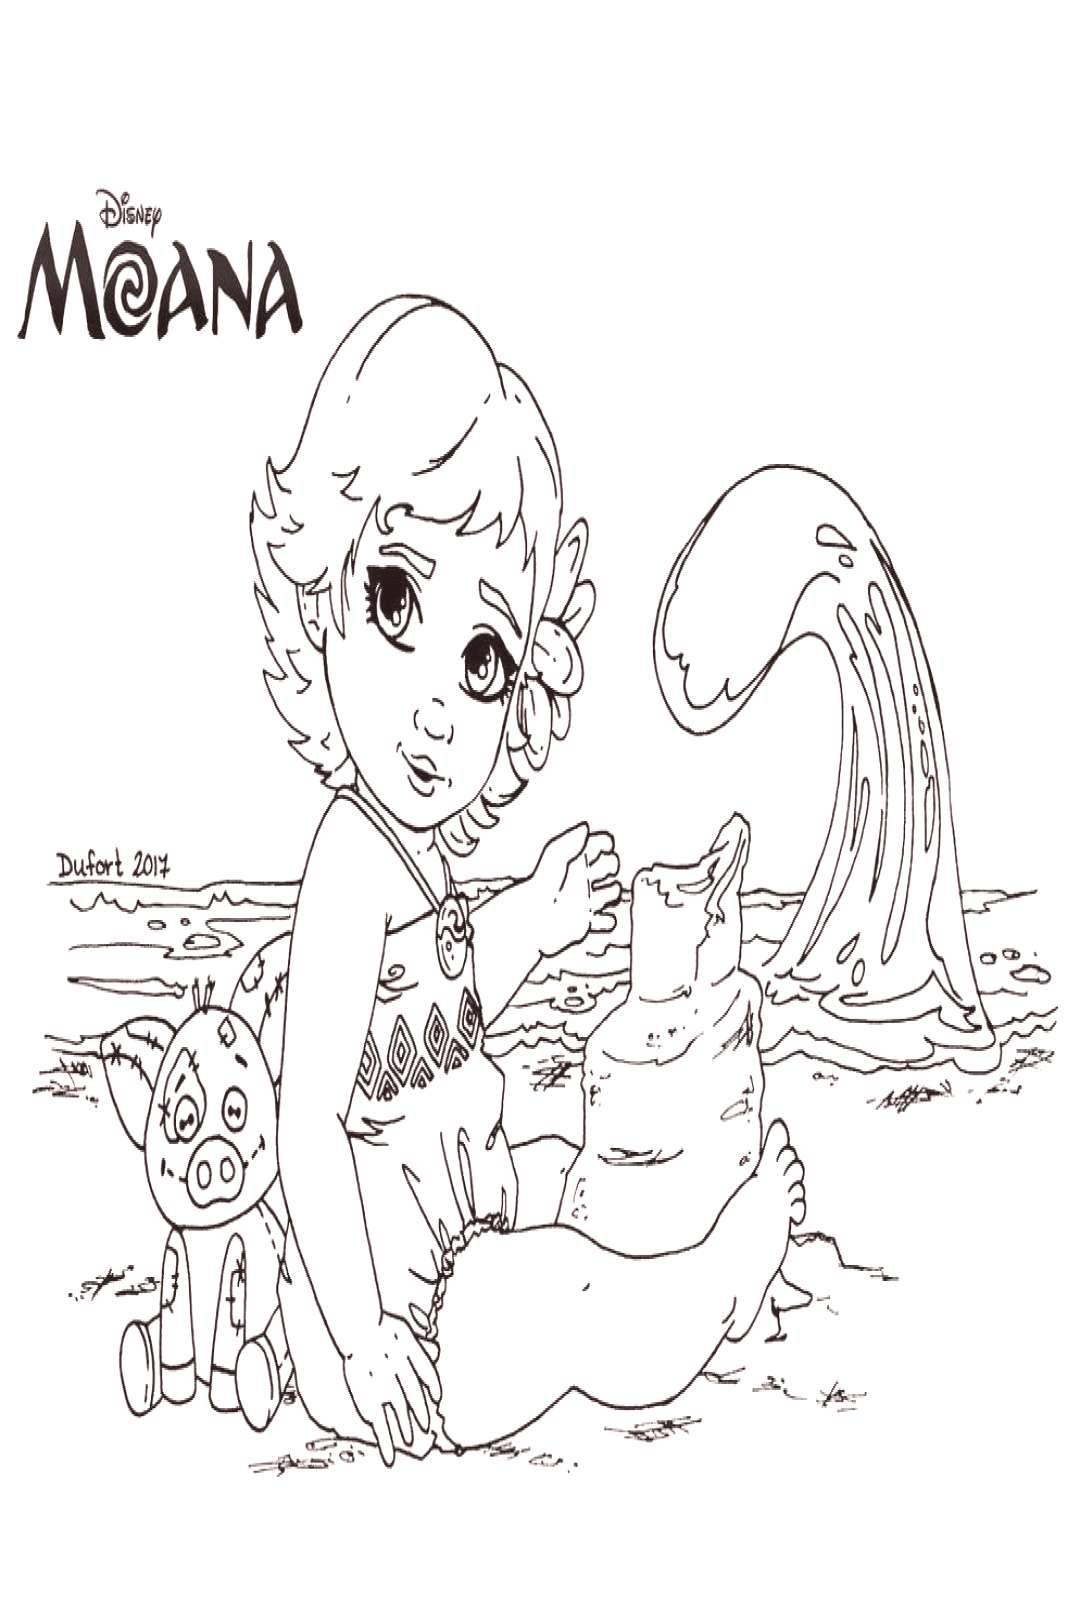 Disney Coloring Pages Moana Elegant Moana Lineart By Jadedragonne On Deviantart Coloring